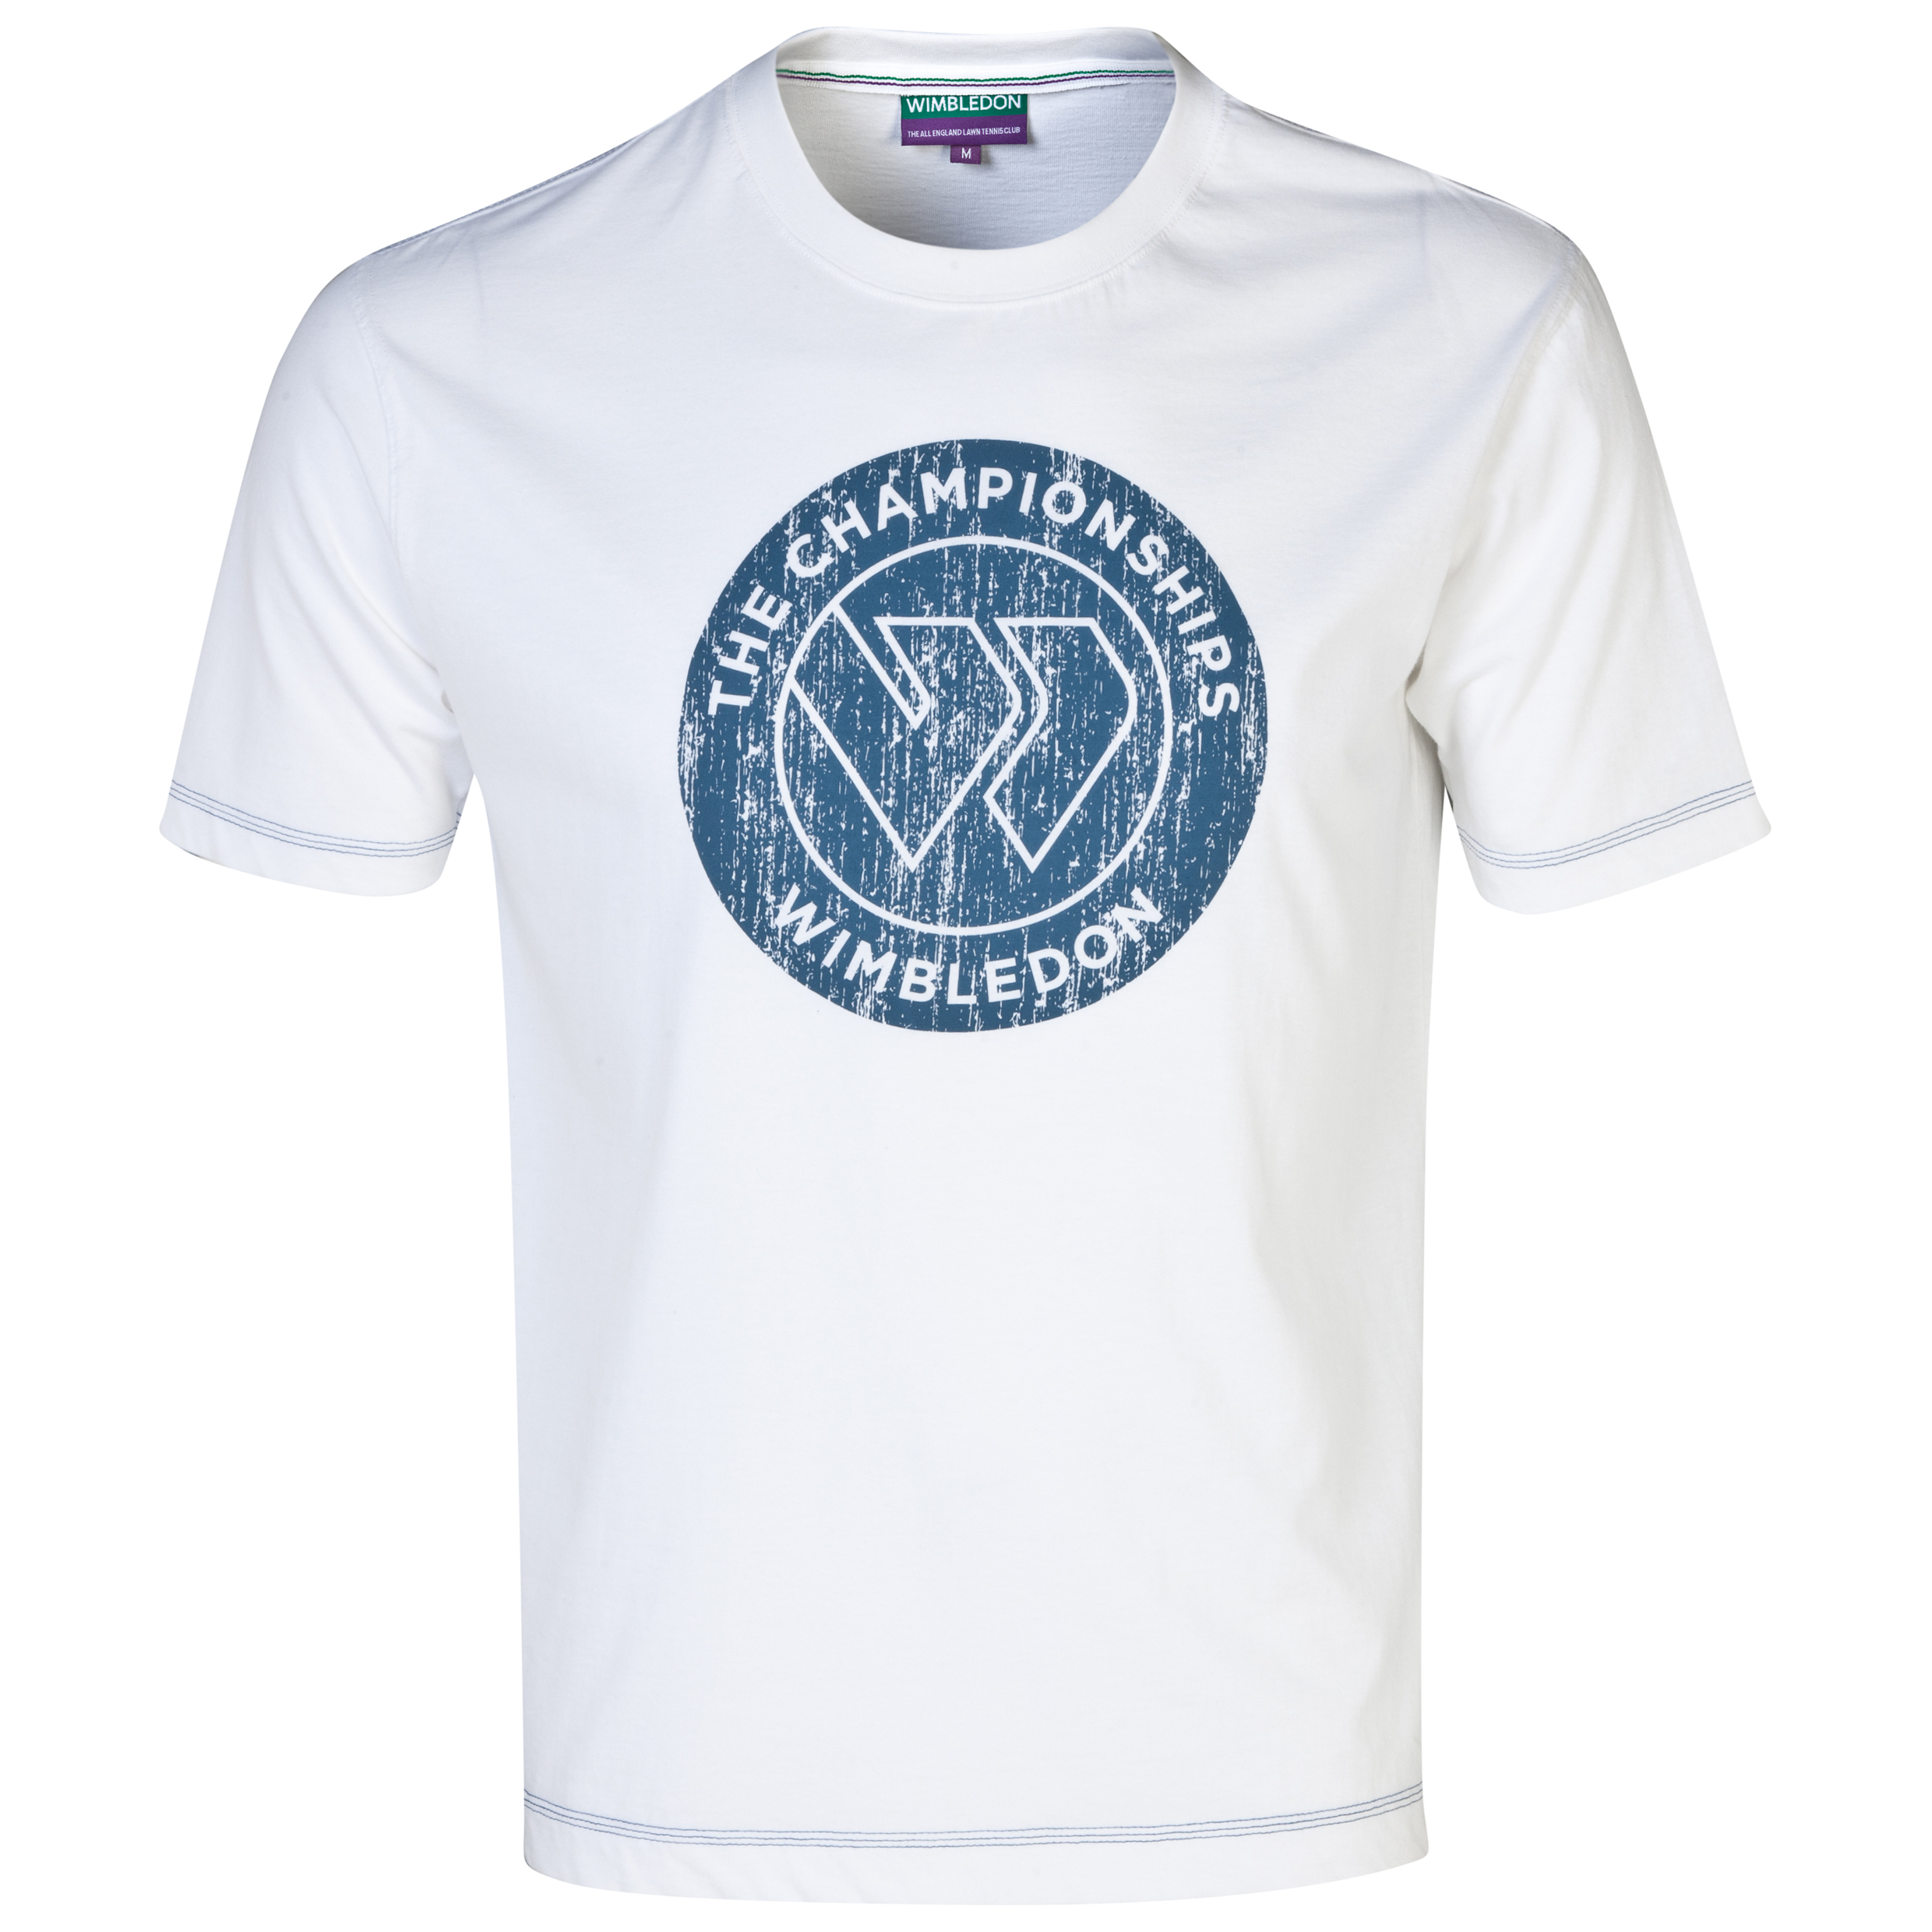 Wimbledon Flying W Print T-Shirt White